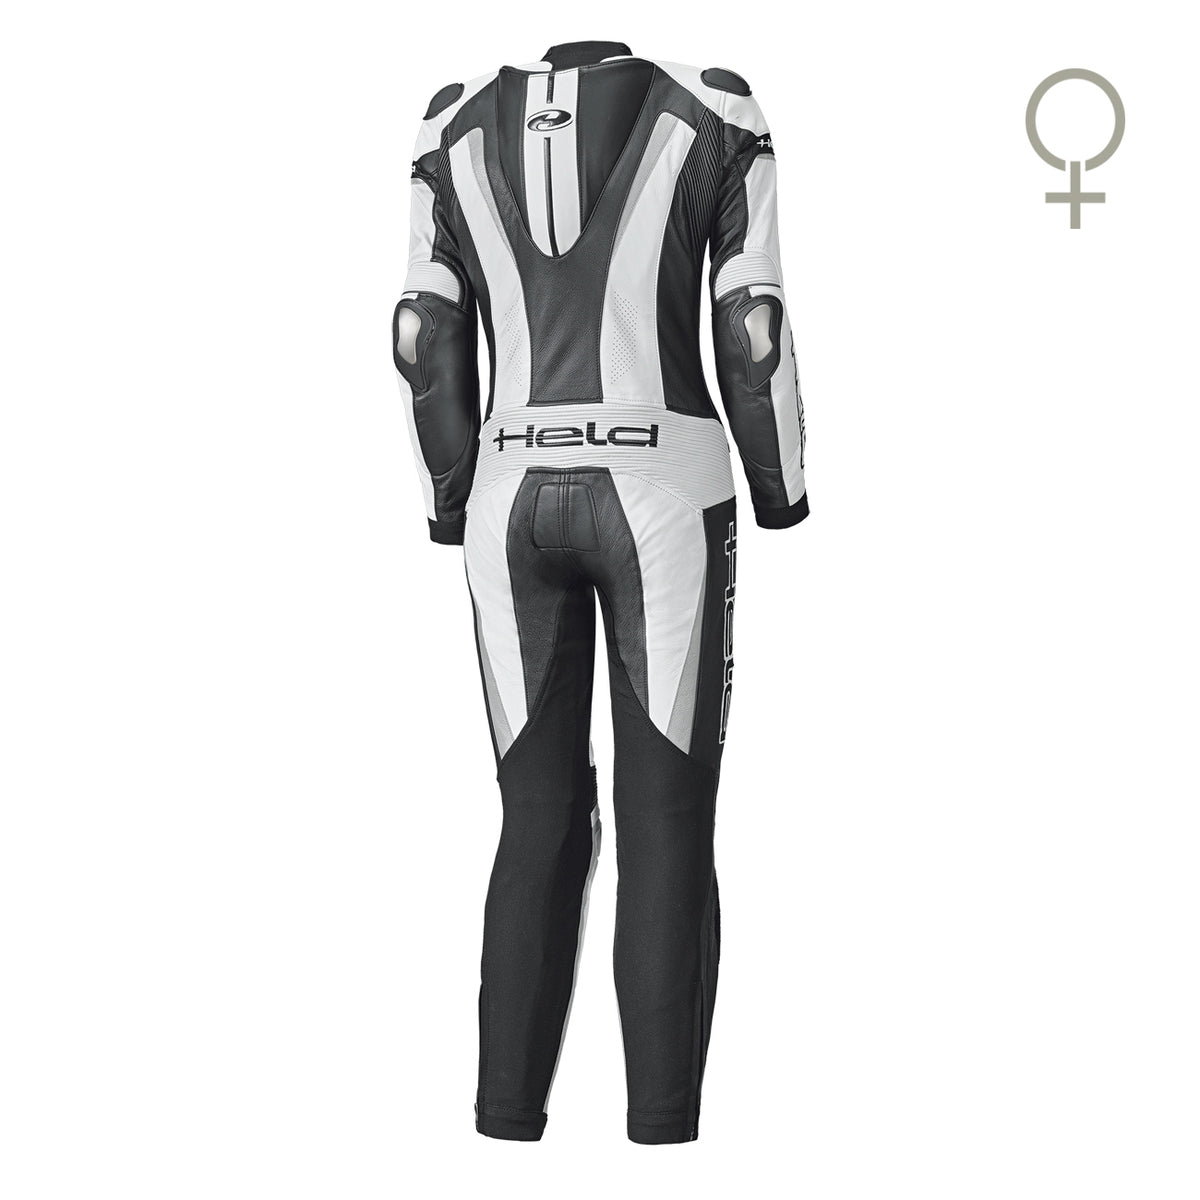 Ayana II, 1 Pc Leather Suit, Held - Averys Motorcycles